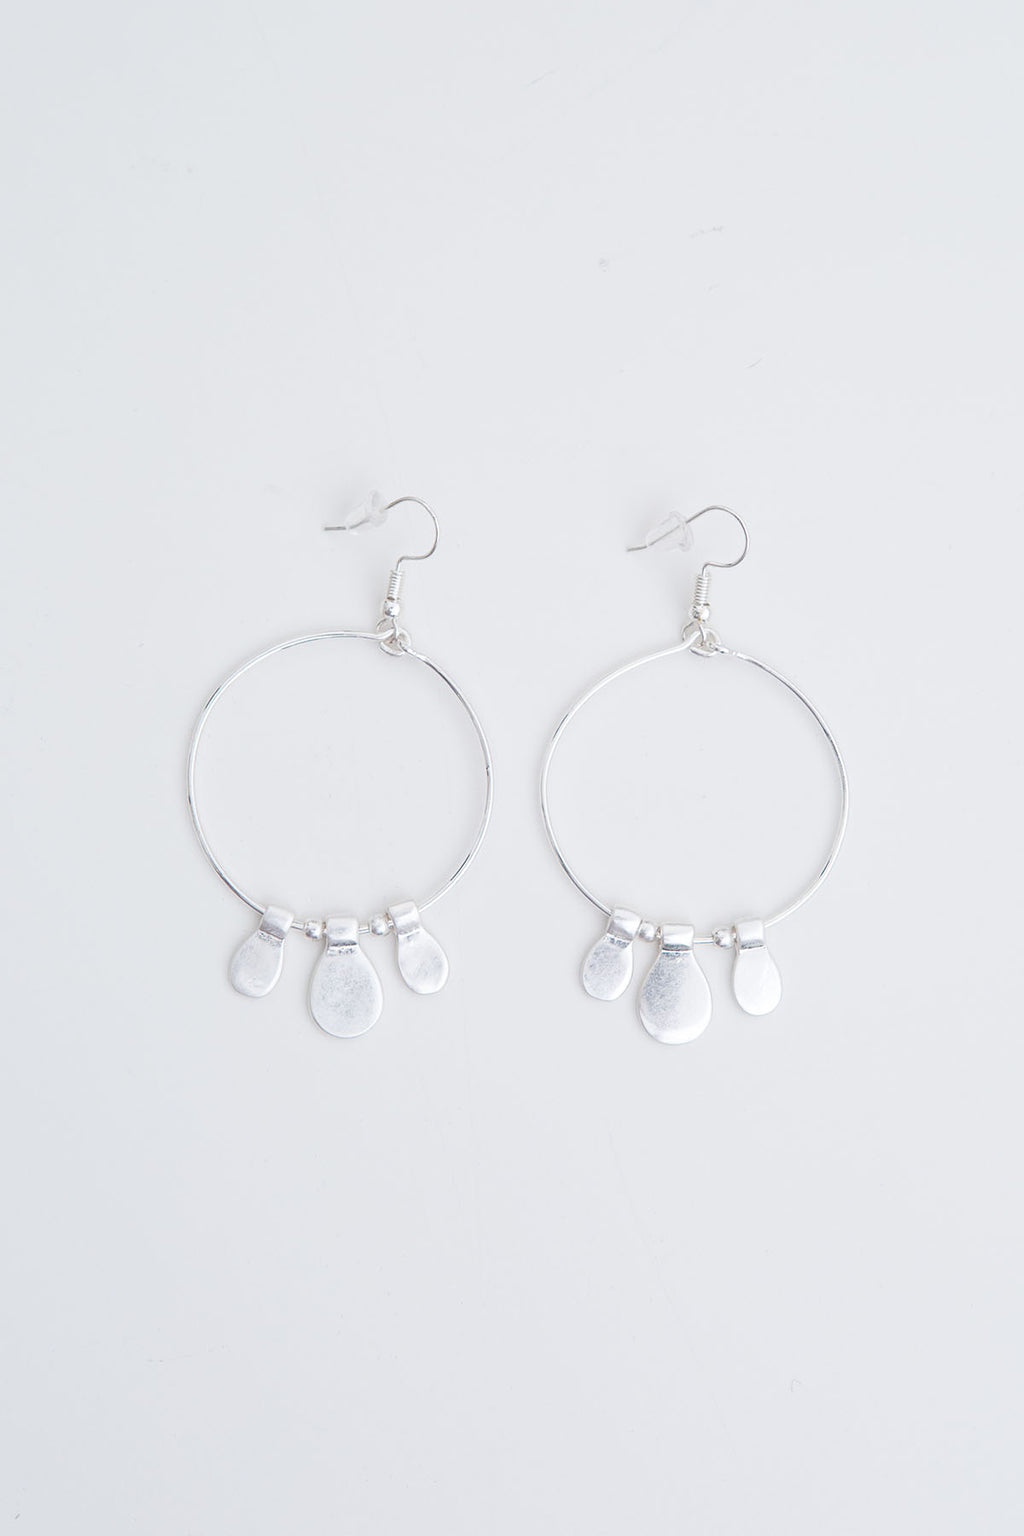 Lala Earrings - Silver - The Bohemian Corner